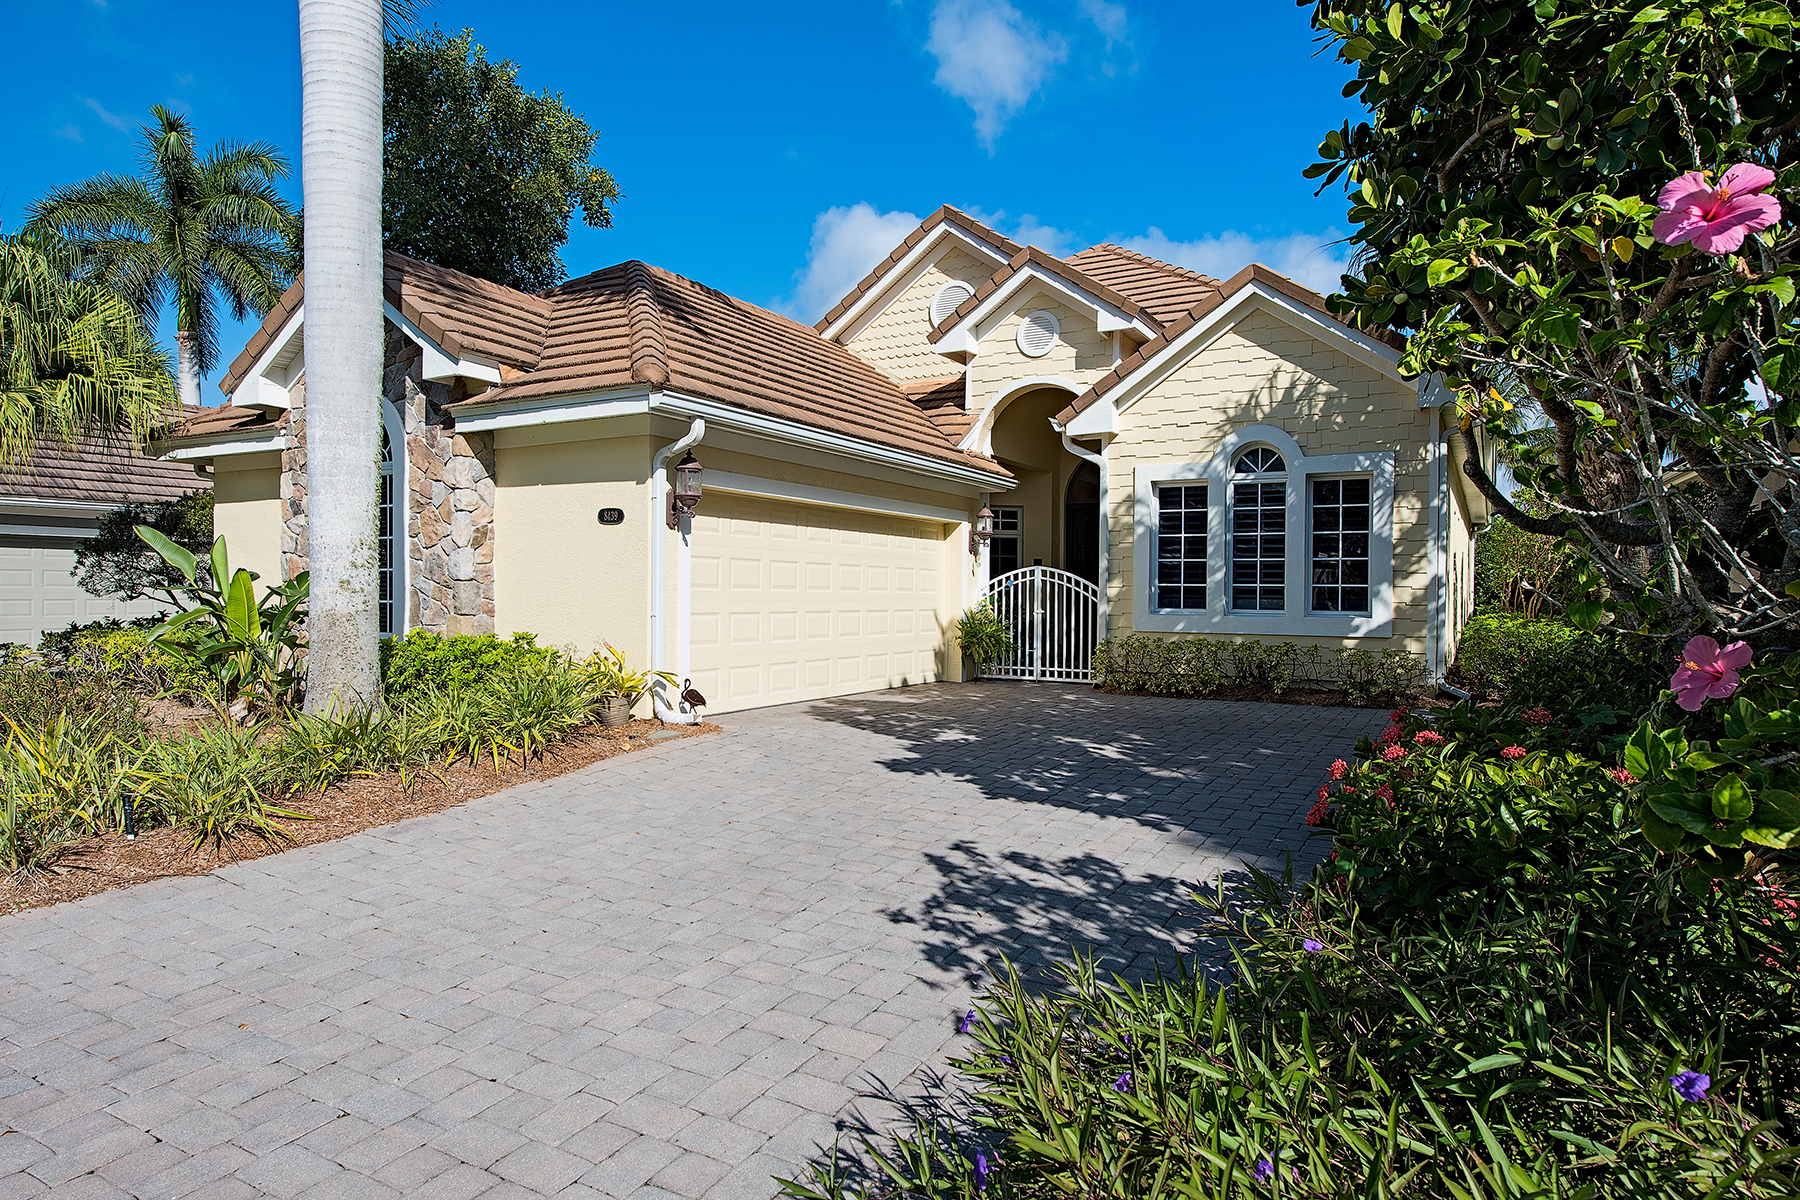 Casa Unifamiliar por un Venta en FIDDLERS CREEK 8439 Mallards Way Naples, Florida, 34114 Estados Unidos